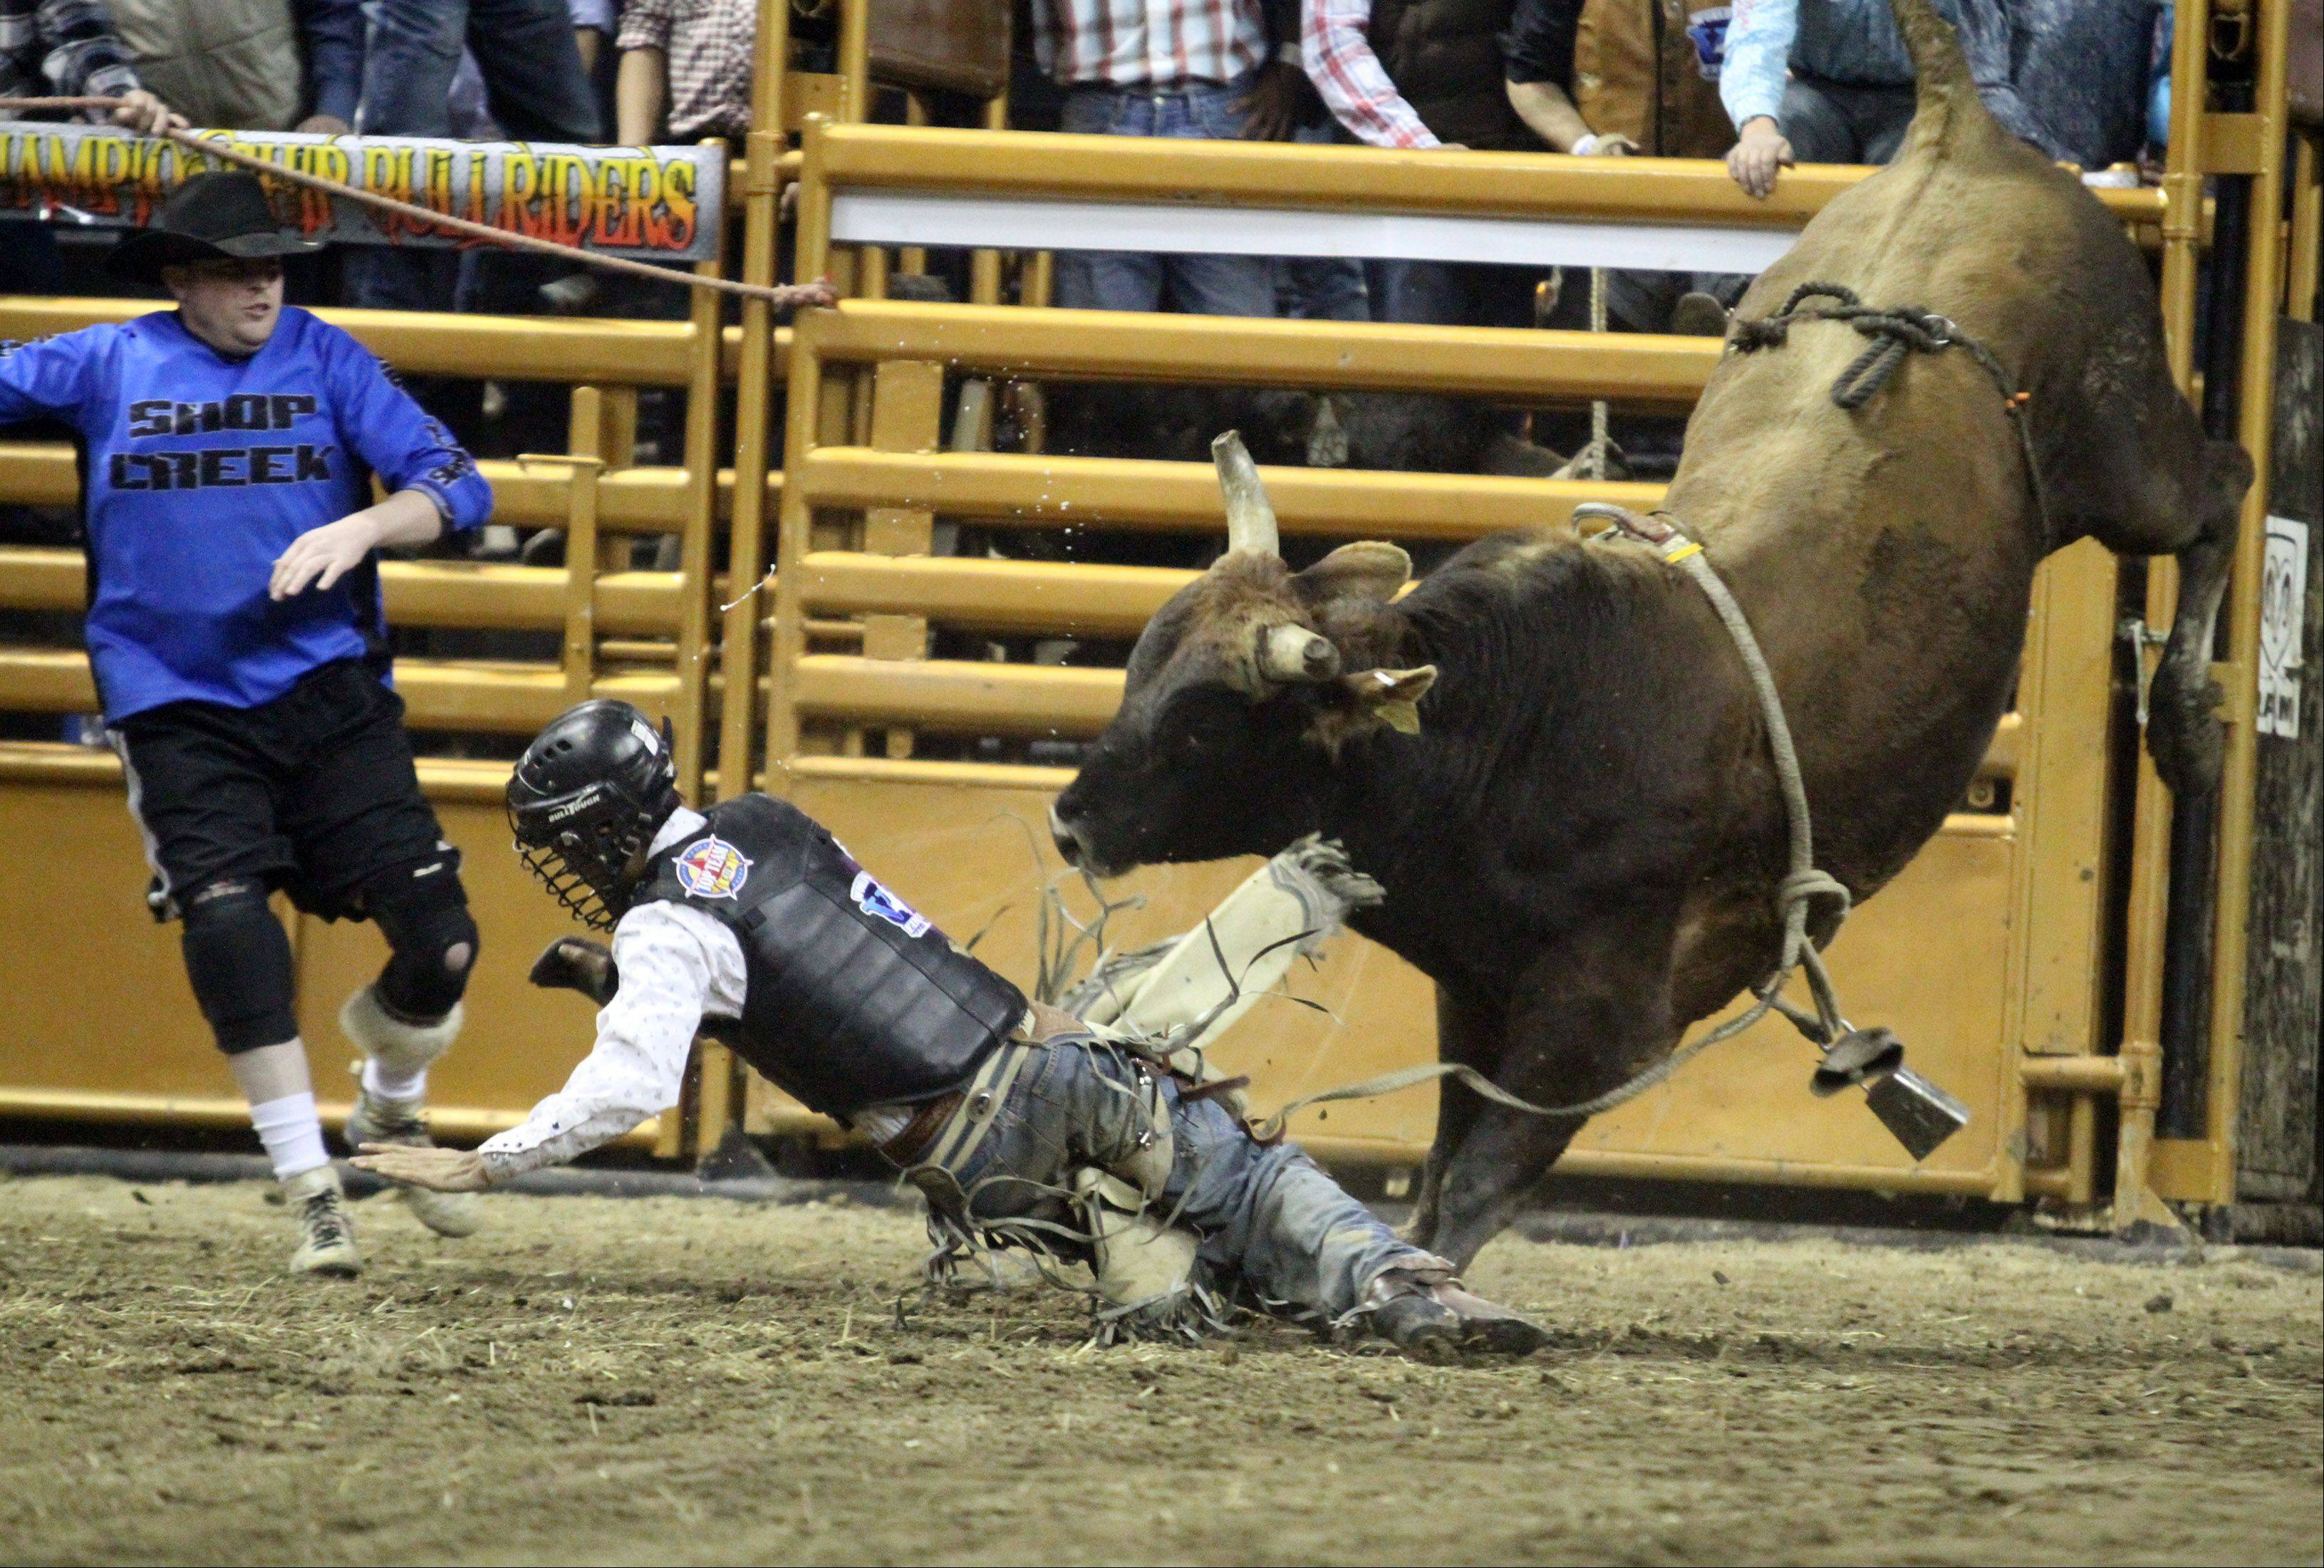 Bullrider Rod McKoewn is thrown off during the Professional Championship Bullrider's World Tour Finale V at the Sears Centre in Hoffman Estates on Saturday, February 2, 2013.